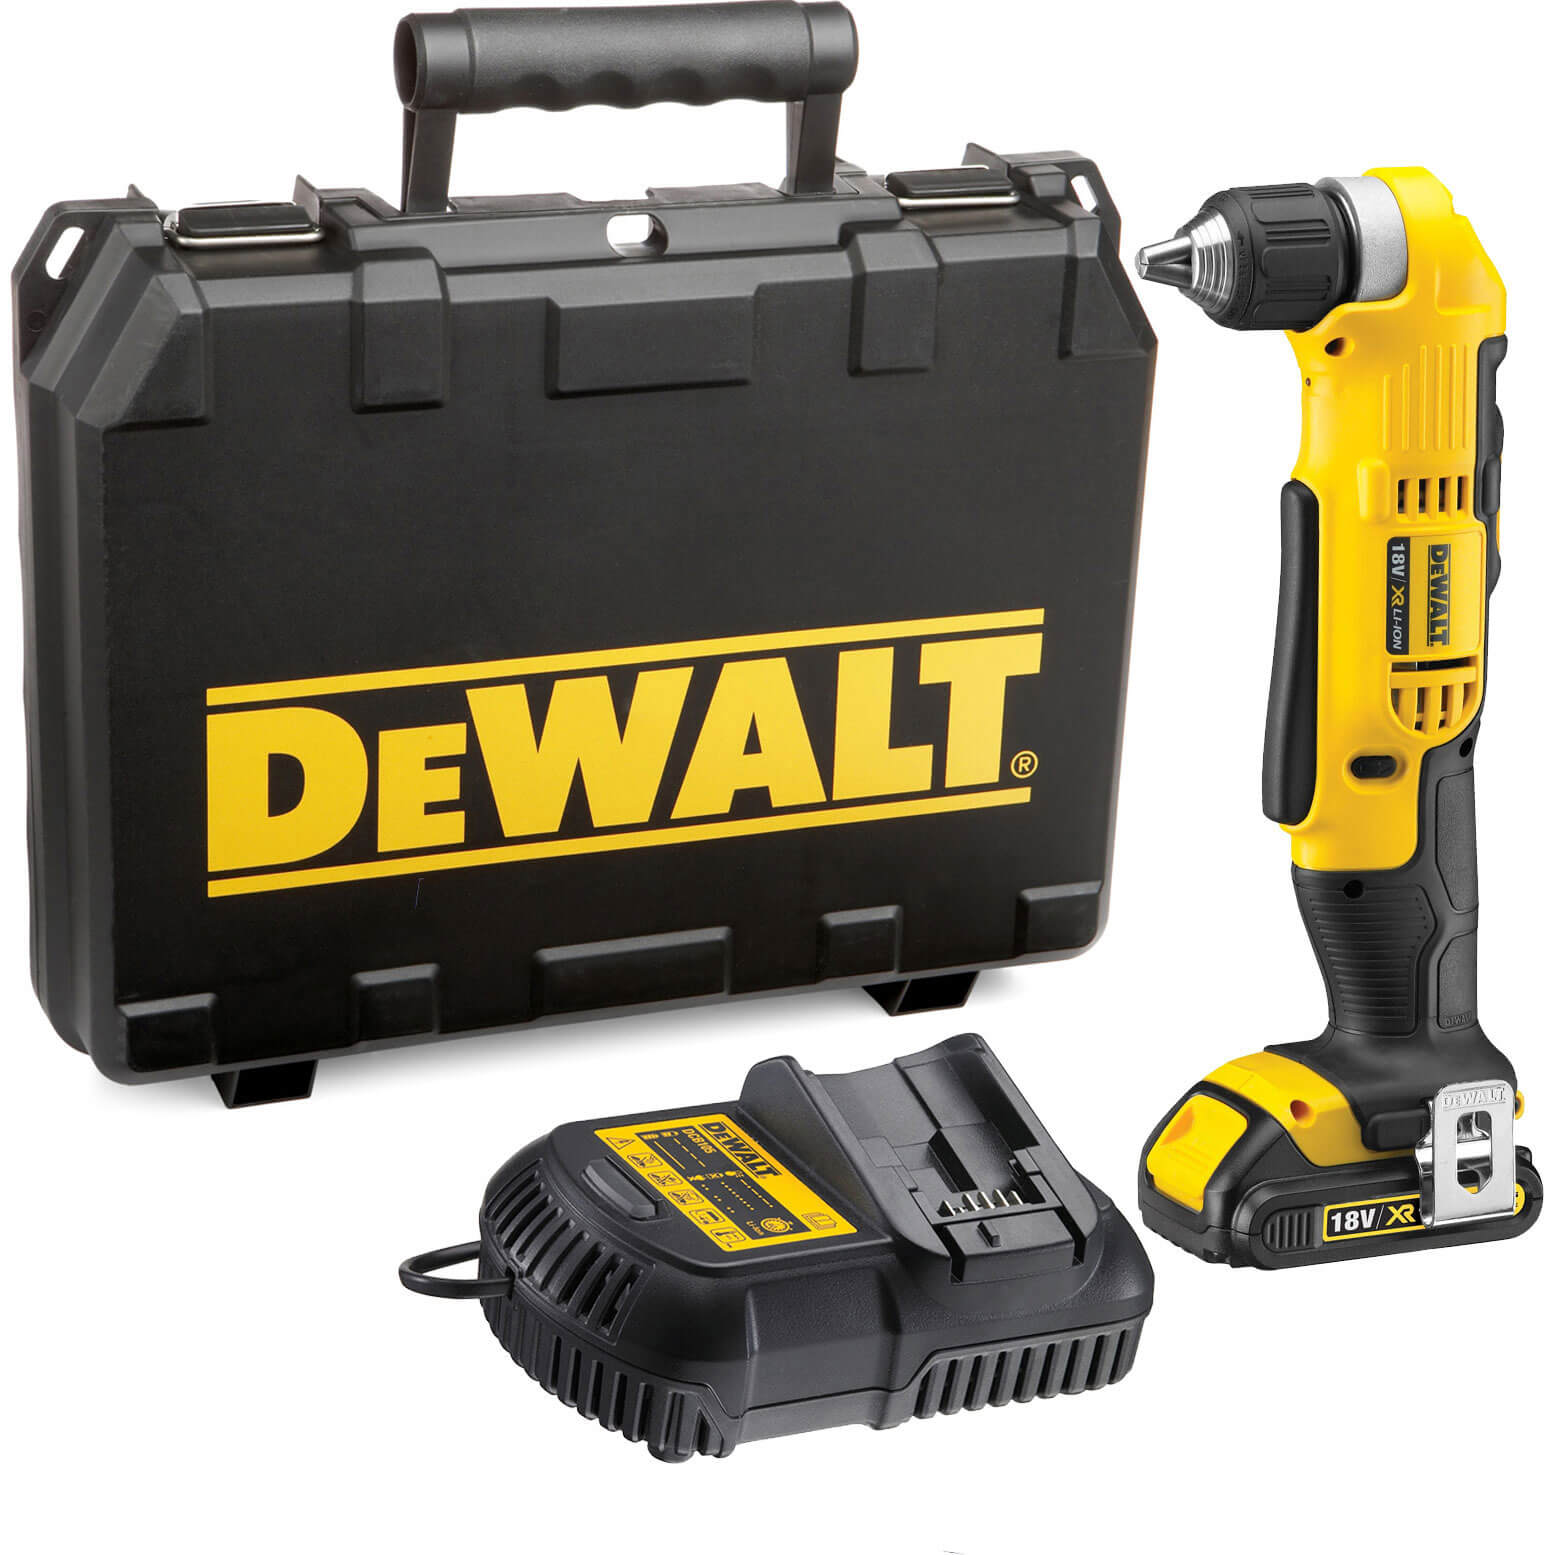 DeWalt DCD740C1 18v Cordless XR Angle Drill with 1 Li-ion Battery 1.5ah